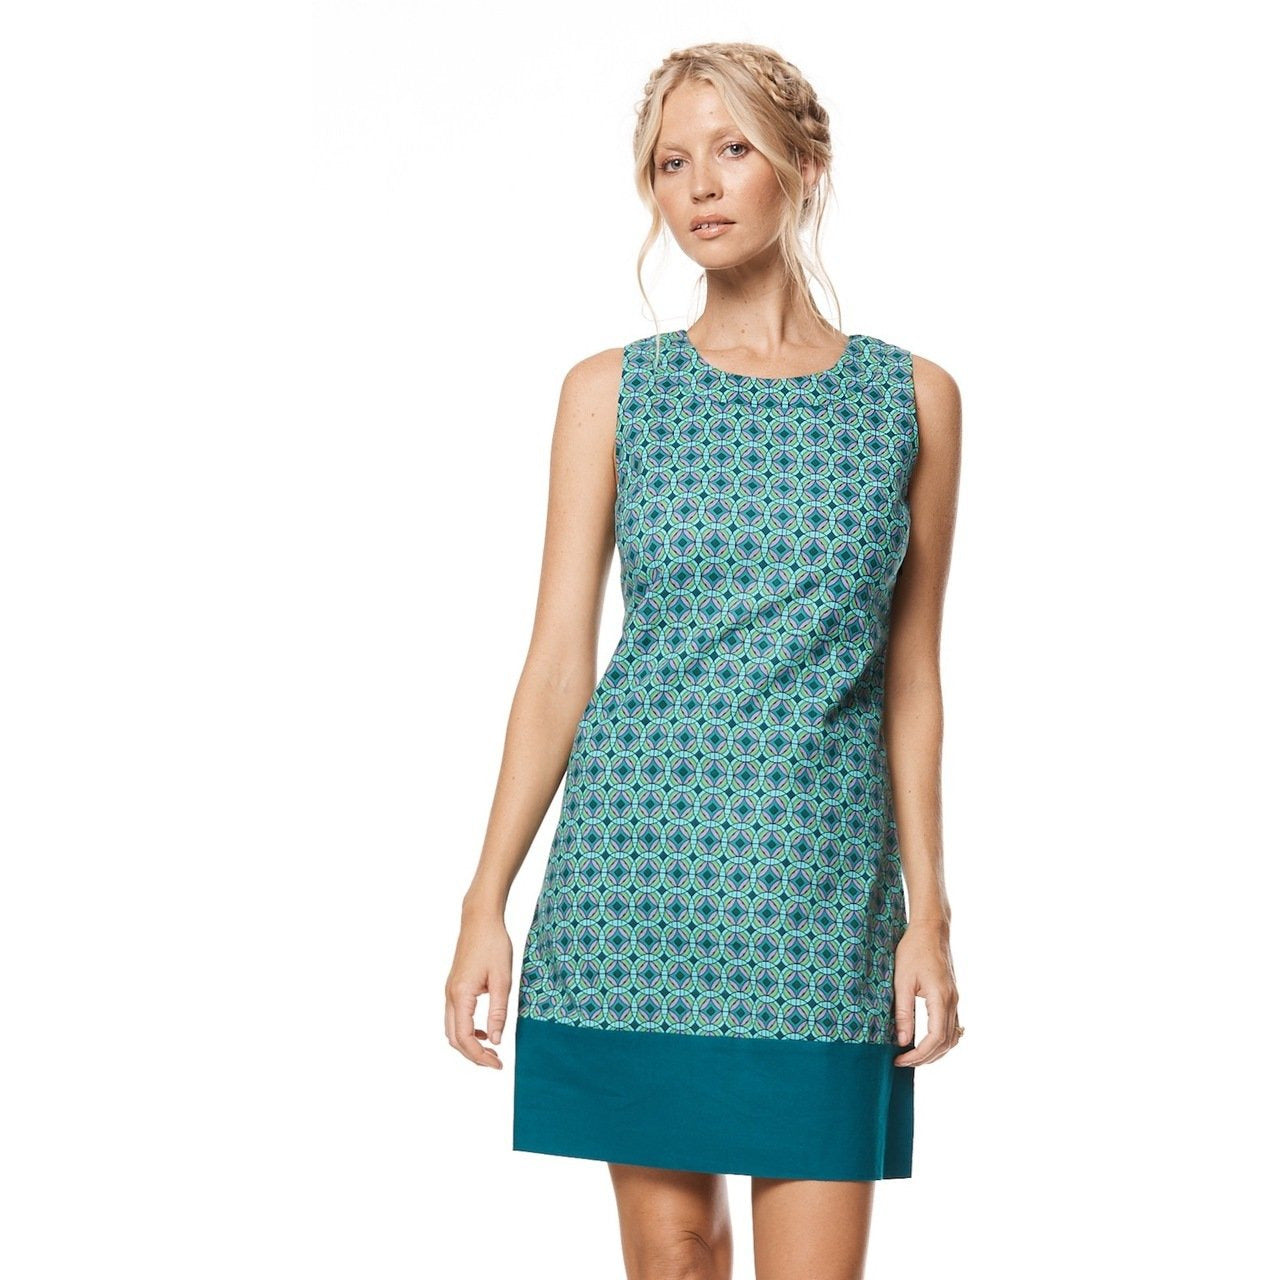 MahaShe Sixties Tunic in Kaleido Teal Print